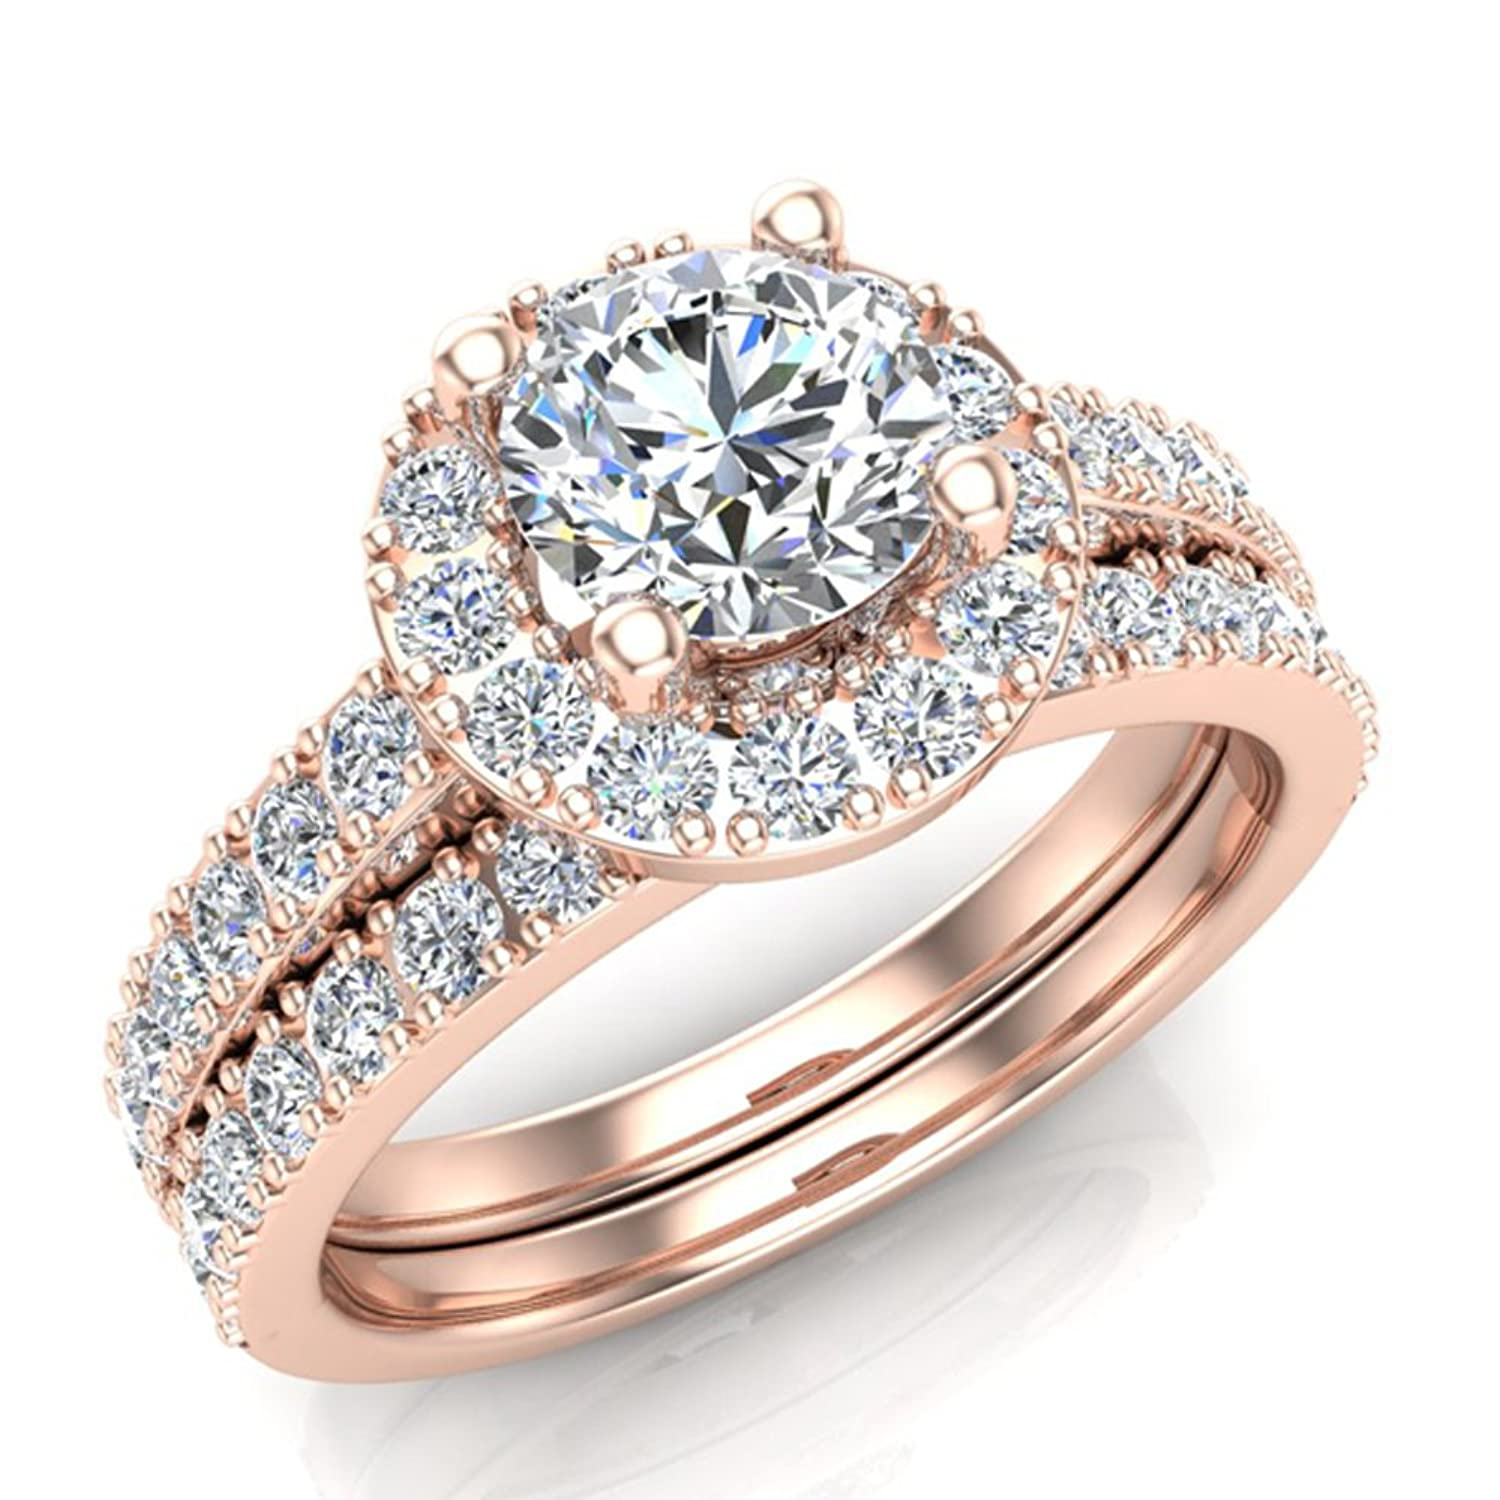 americus new with gay glorious may rings engagement diamond days attachment of